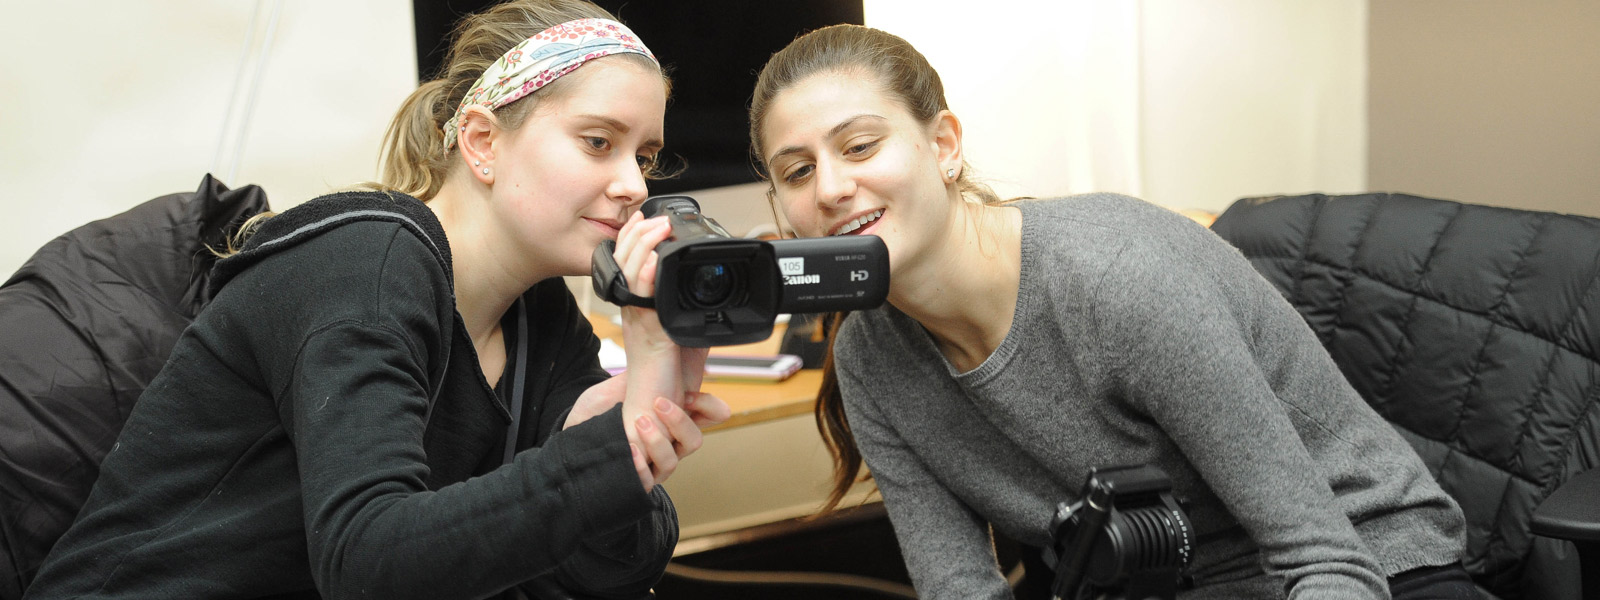 Media Studies students with camera equipment